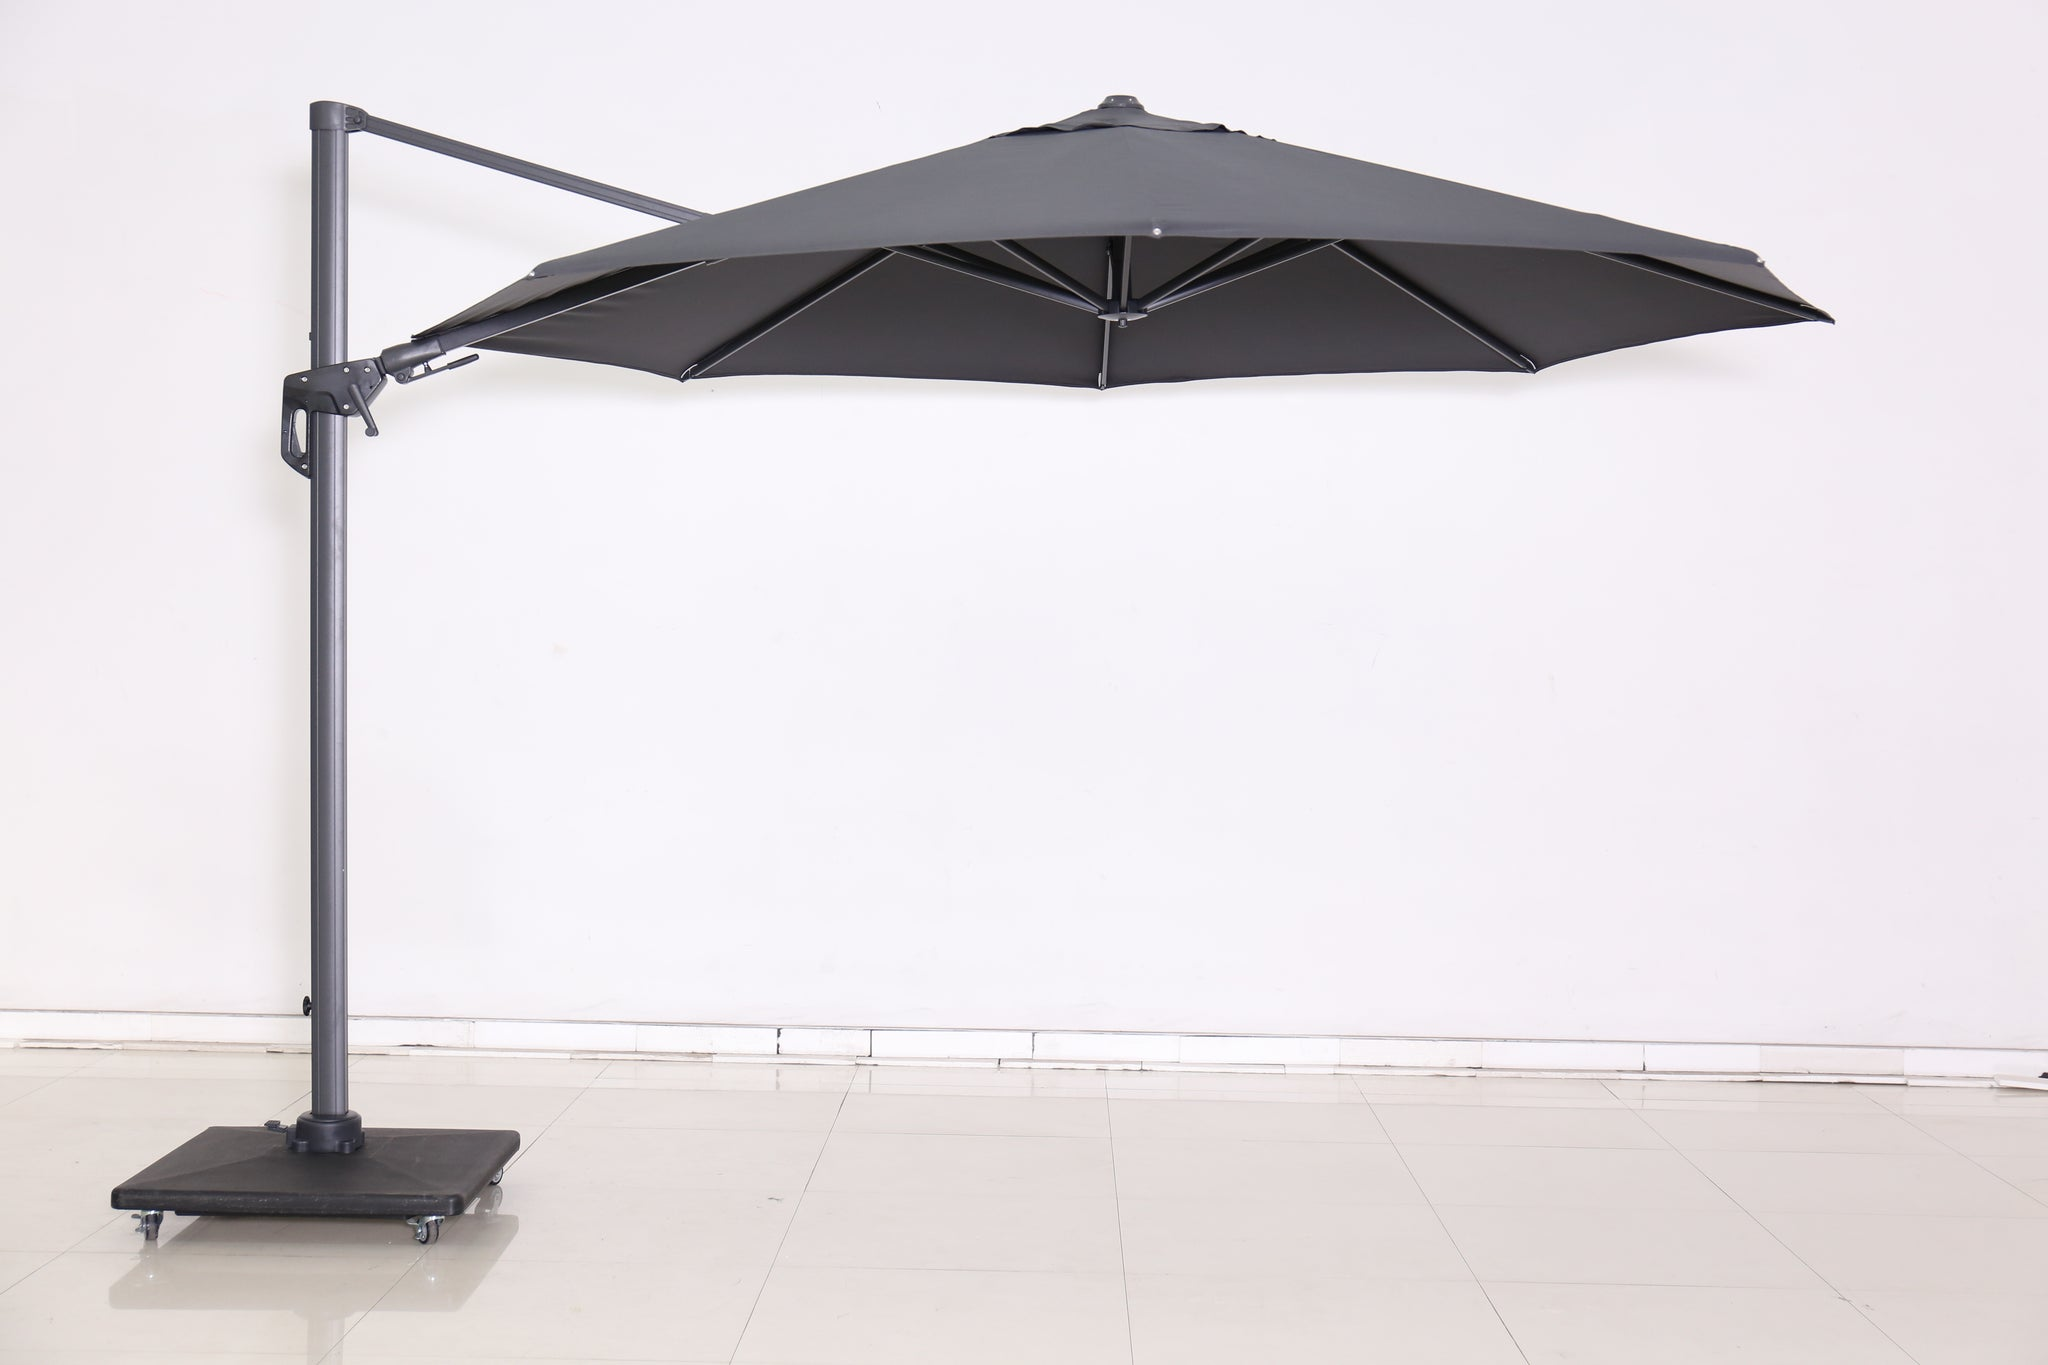 Cantilever light parasol open view